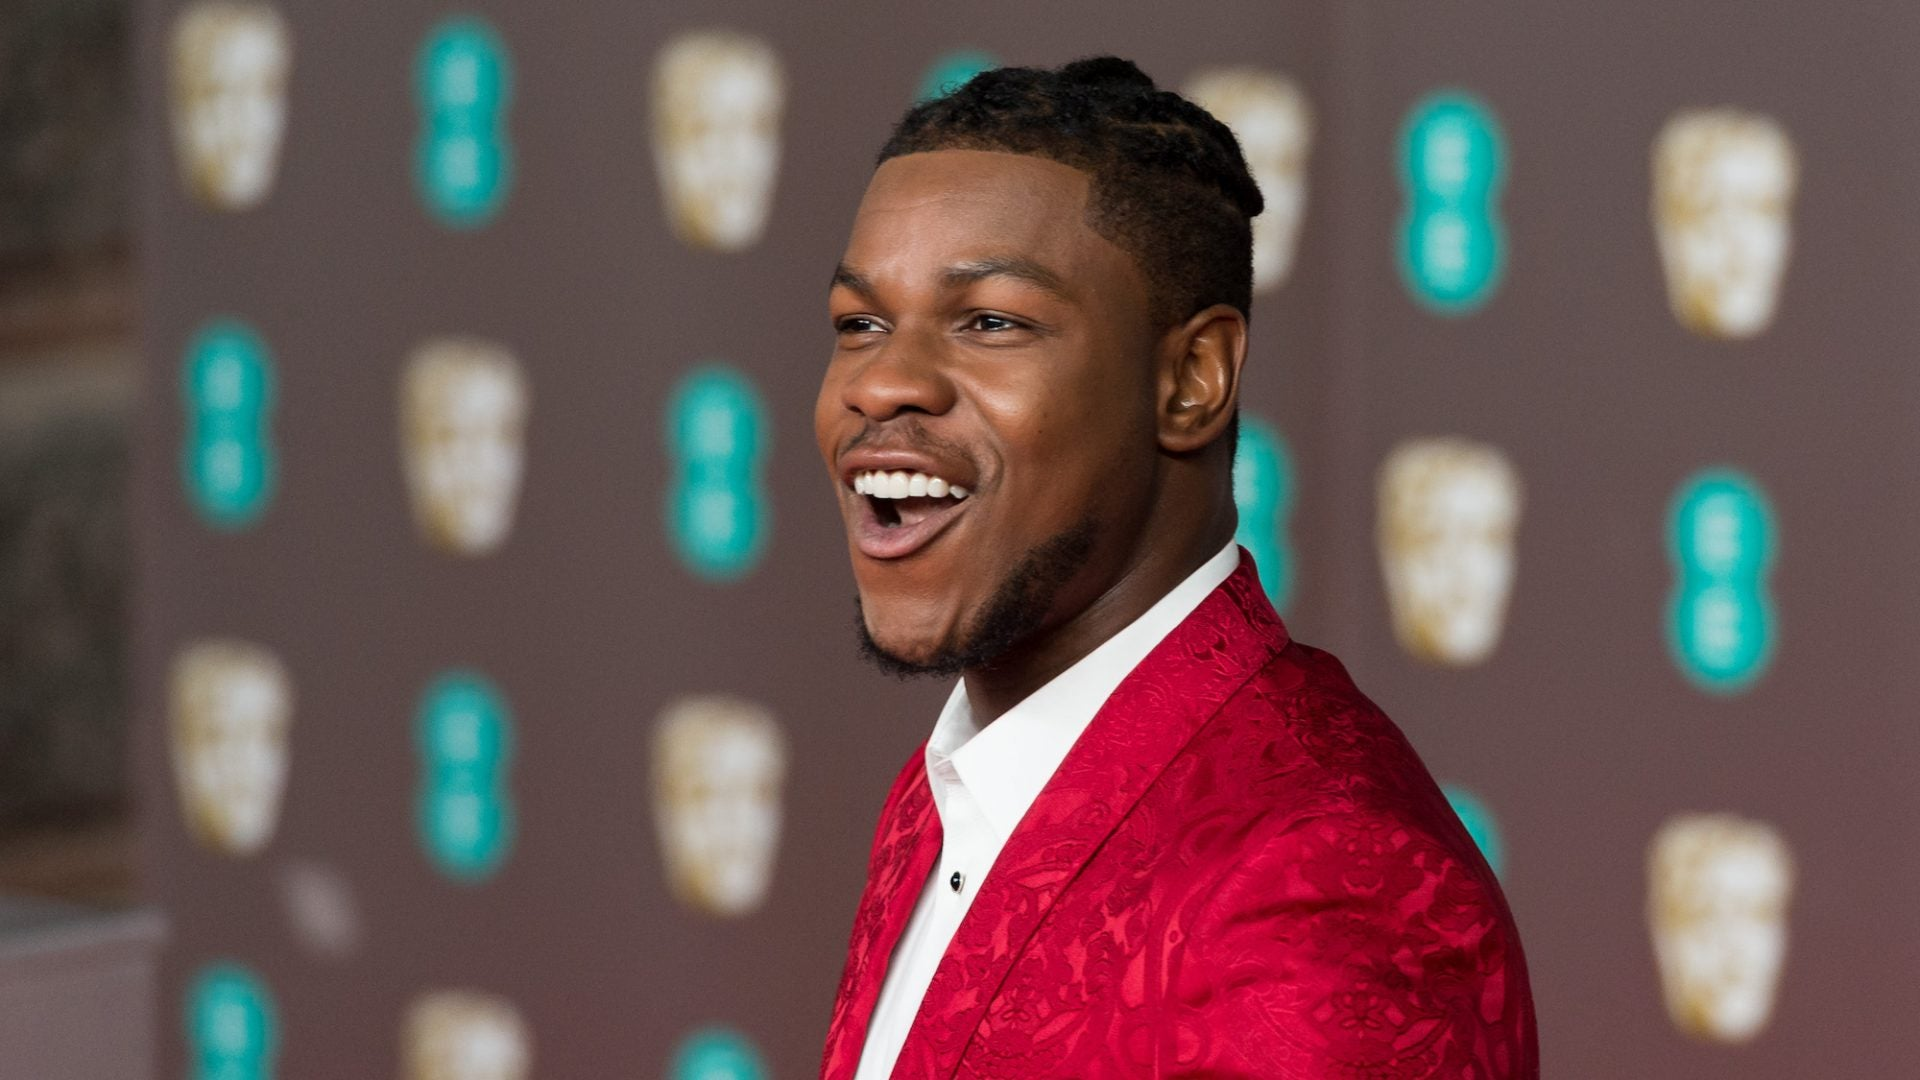 Daniel Kaluuya And John Boyega Share Warm Welcome On EE BAFTAs Red Carpet